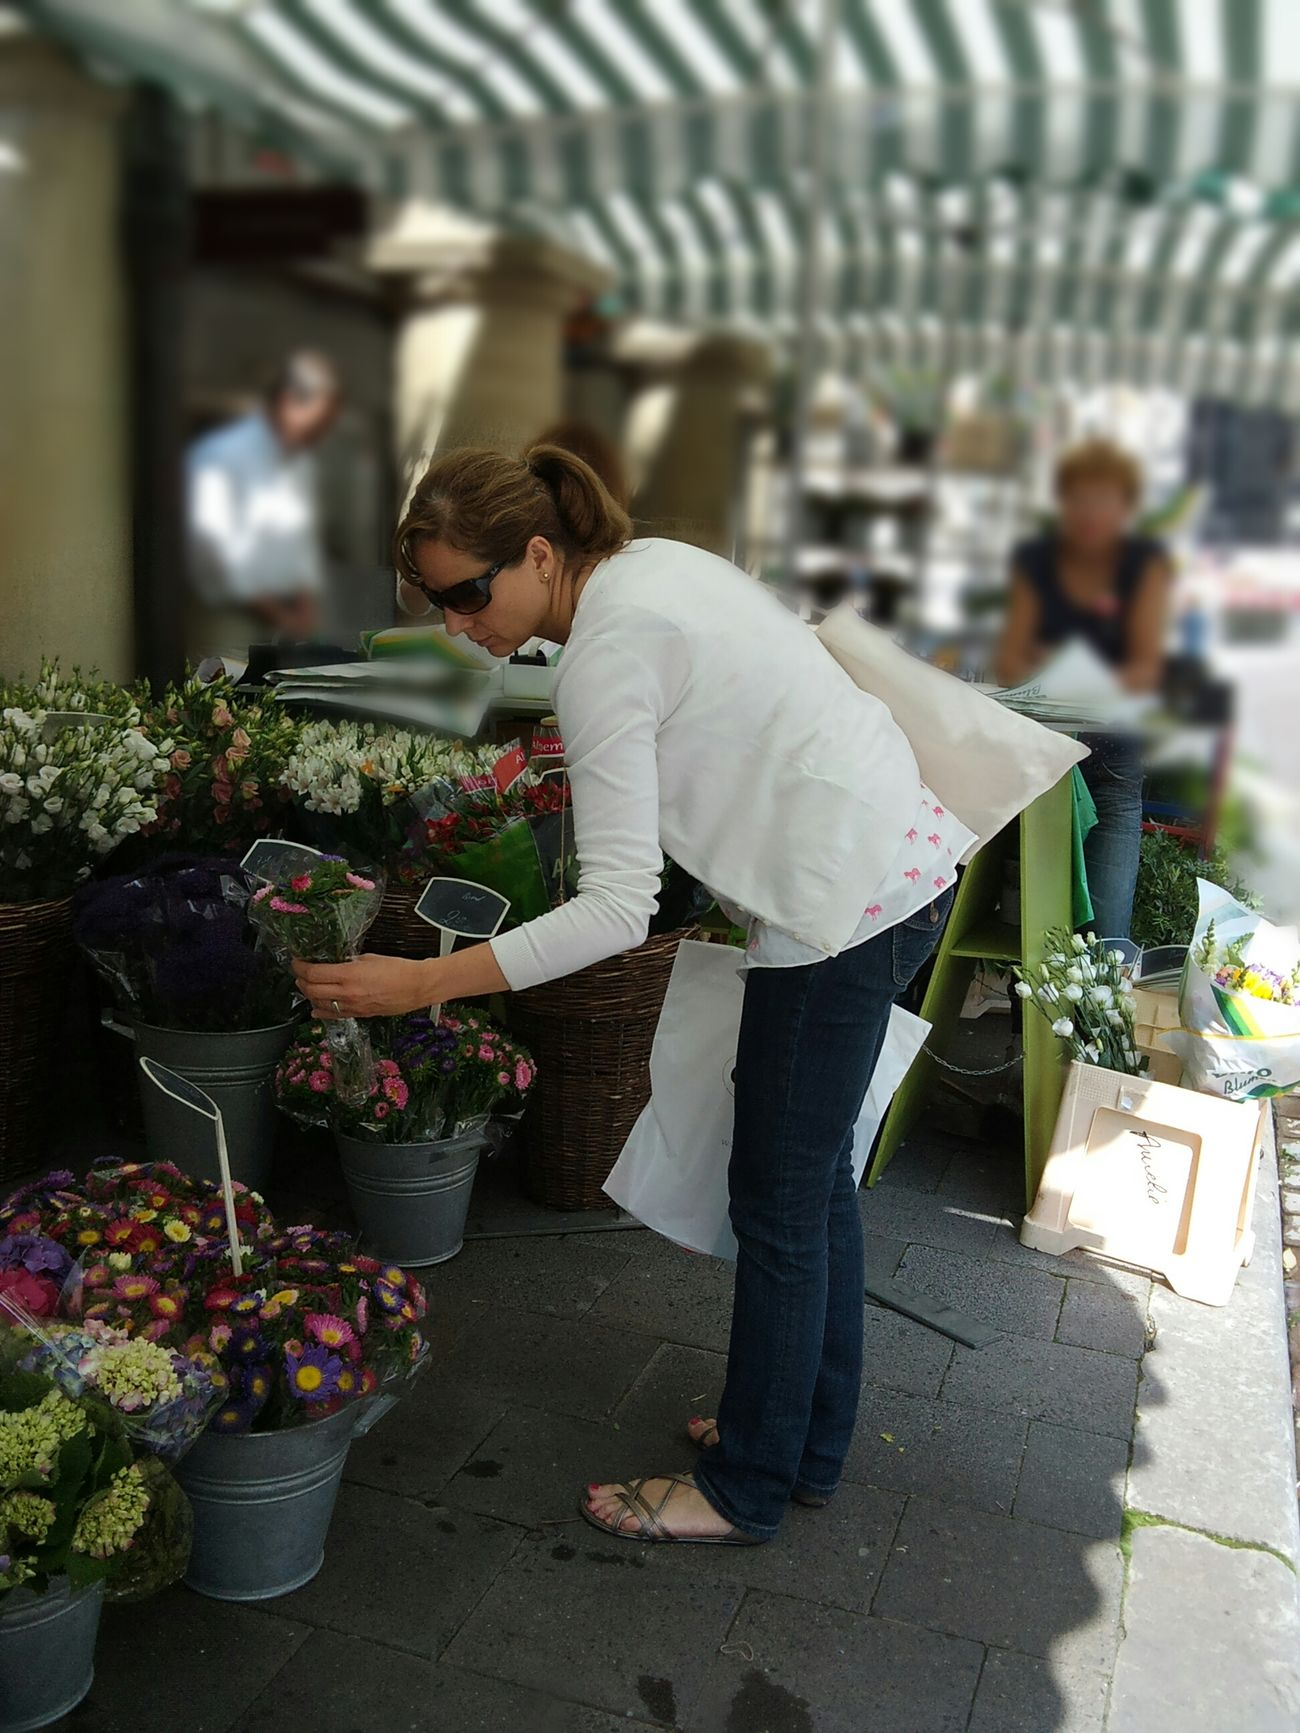 Full Length Adults Only Small Business Real People People Adult Only Women Day Tradition Market Place Flower Shop Flowers